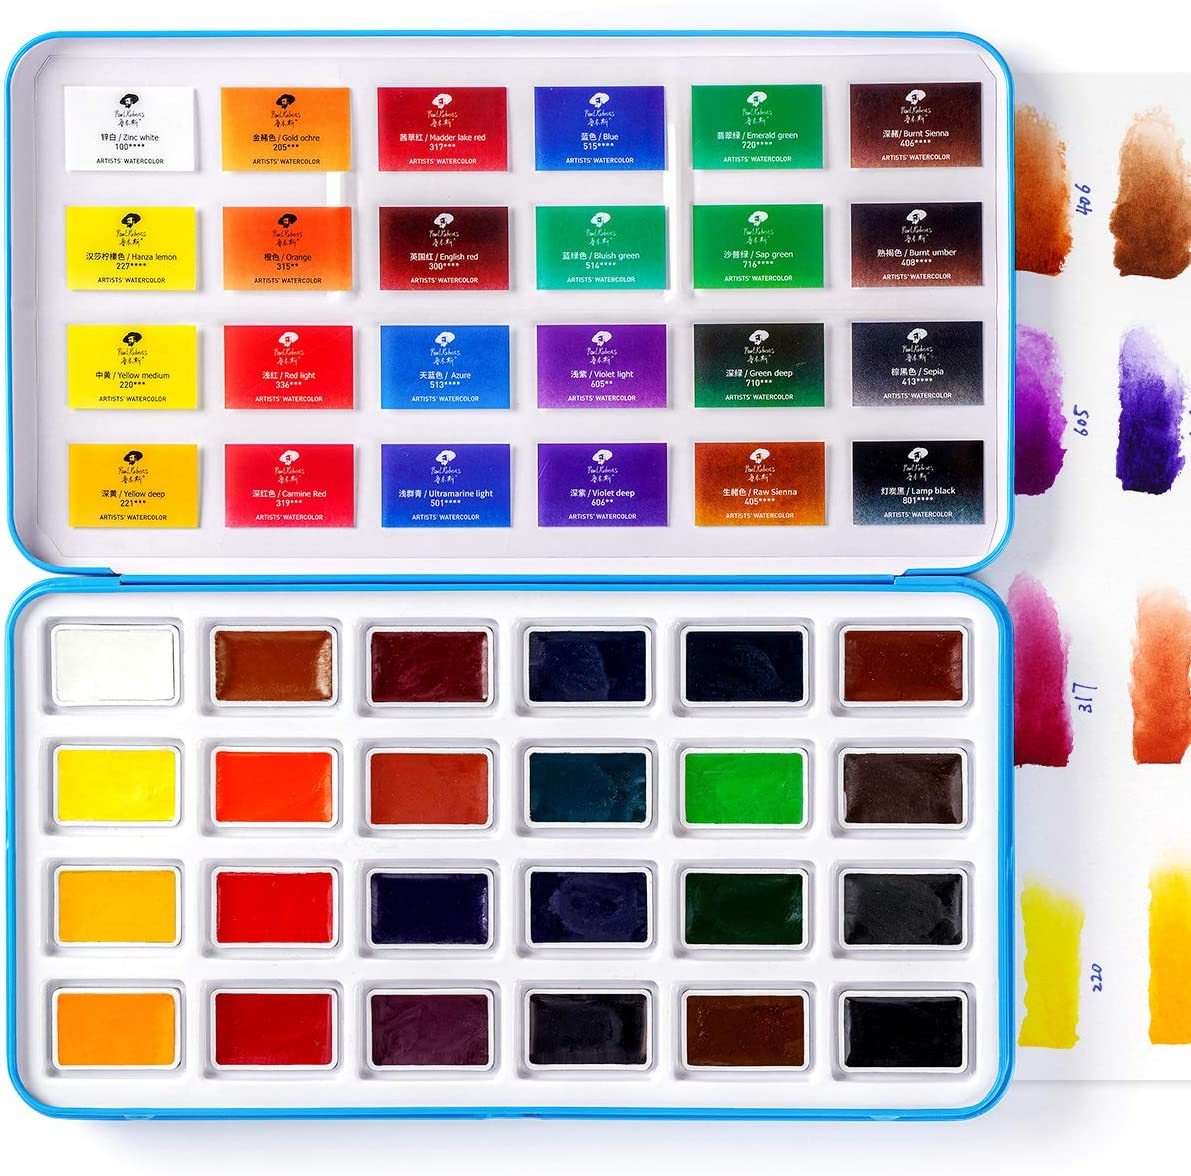 Paul Rubens Watercolor Paint Set, 24 Vivid Colors Water Coloring Paint Full Pan, for Artists, Newbie, Students, High Transparency Intense and Durable, No Chalky